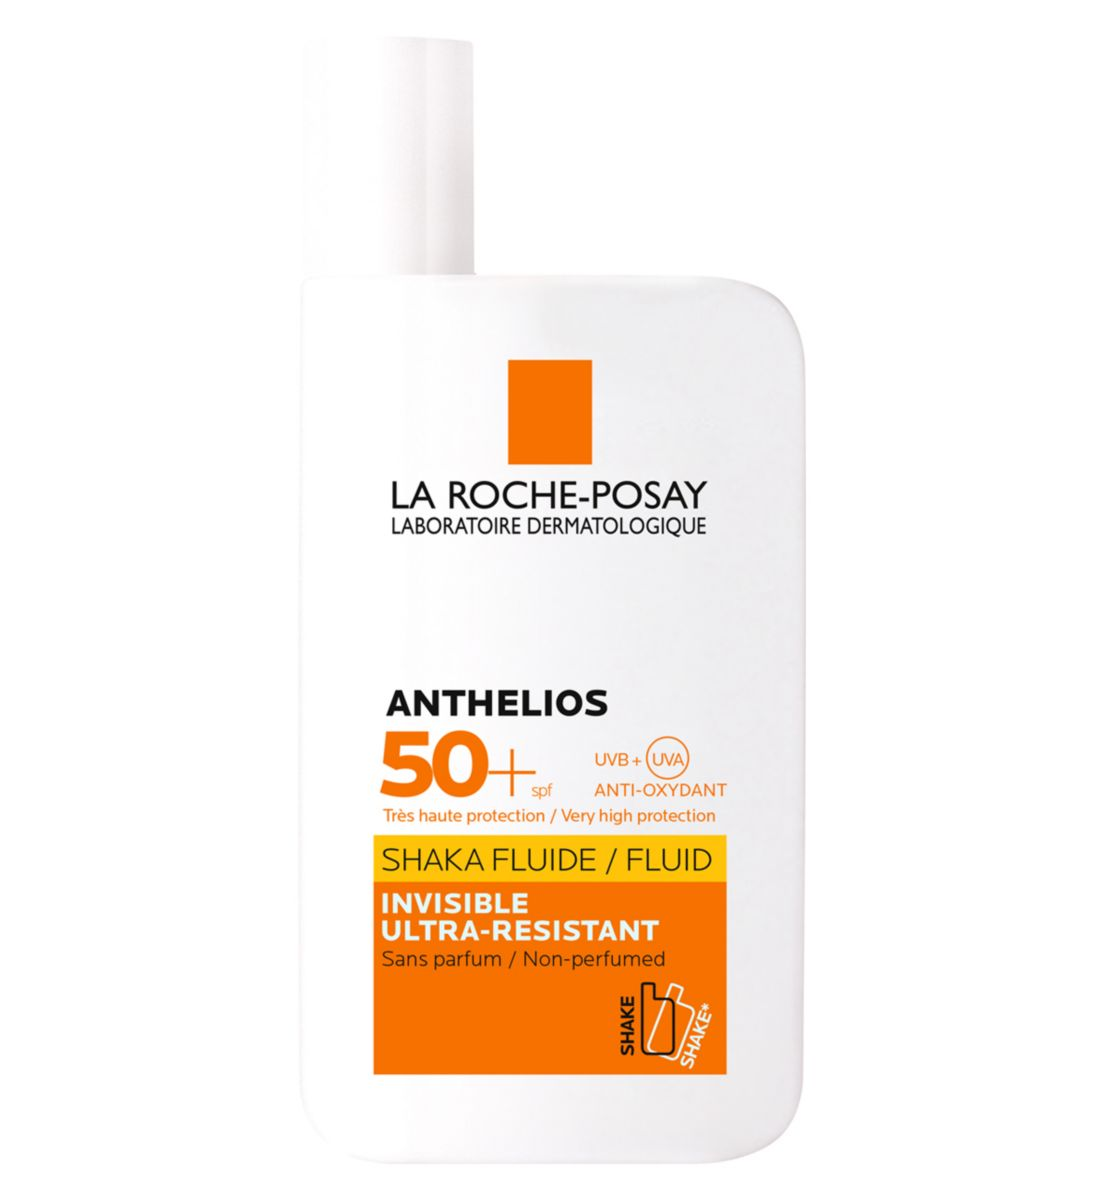 La Roche Posay Anthelios Shaka Ultra Light SPF 50 (NEW).png